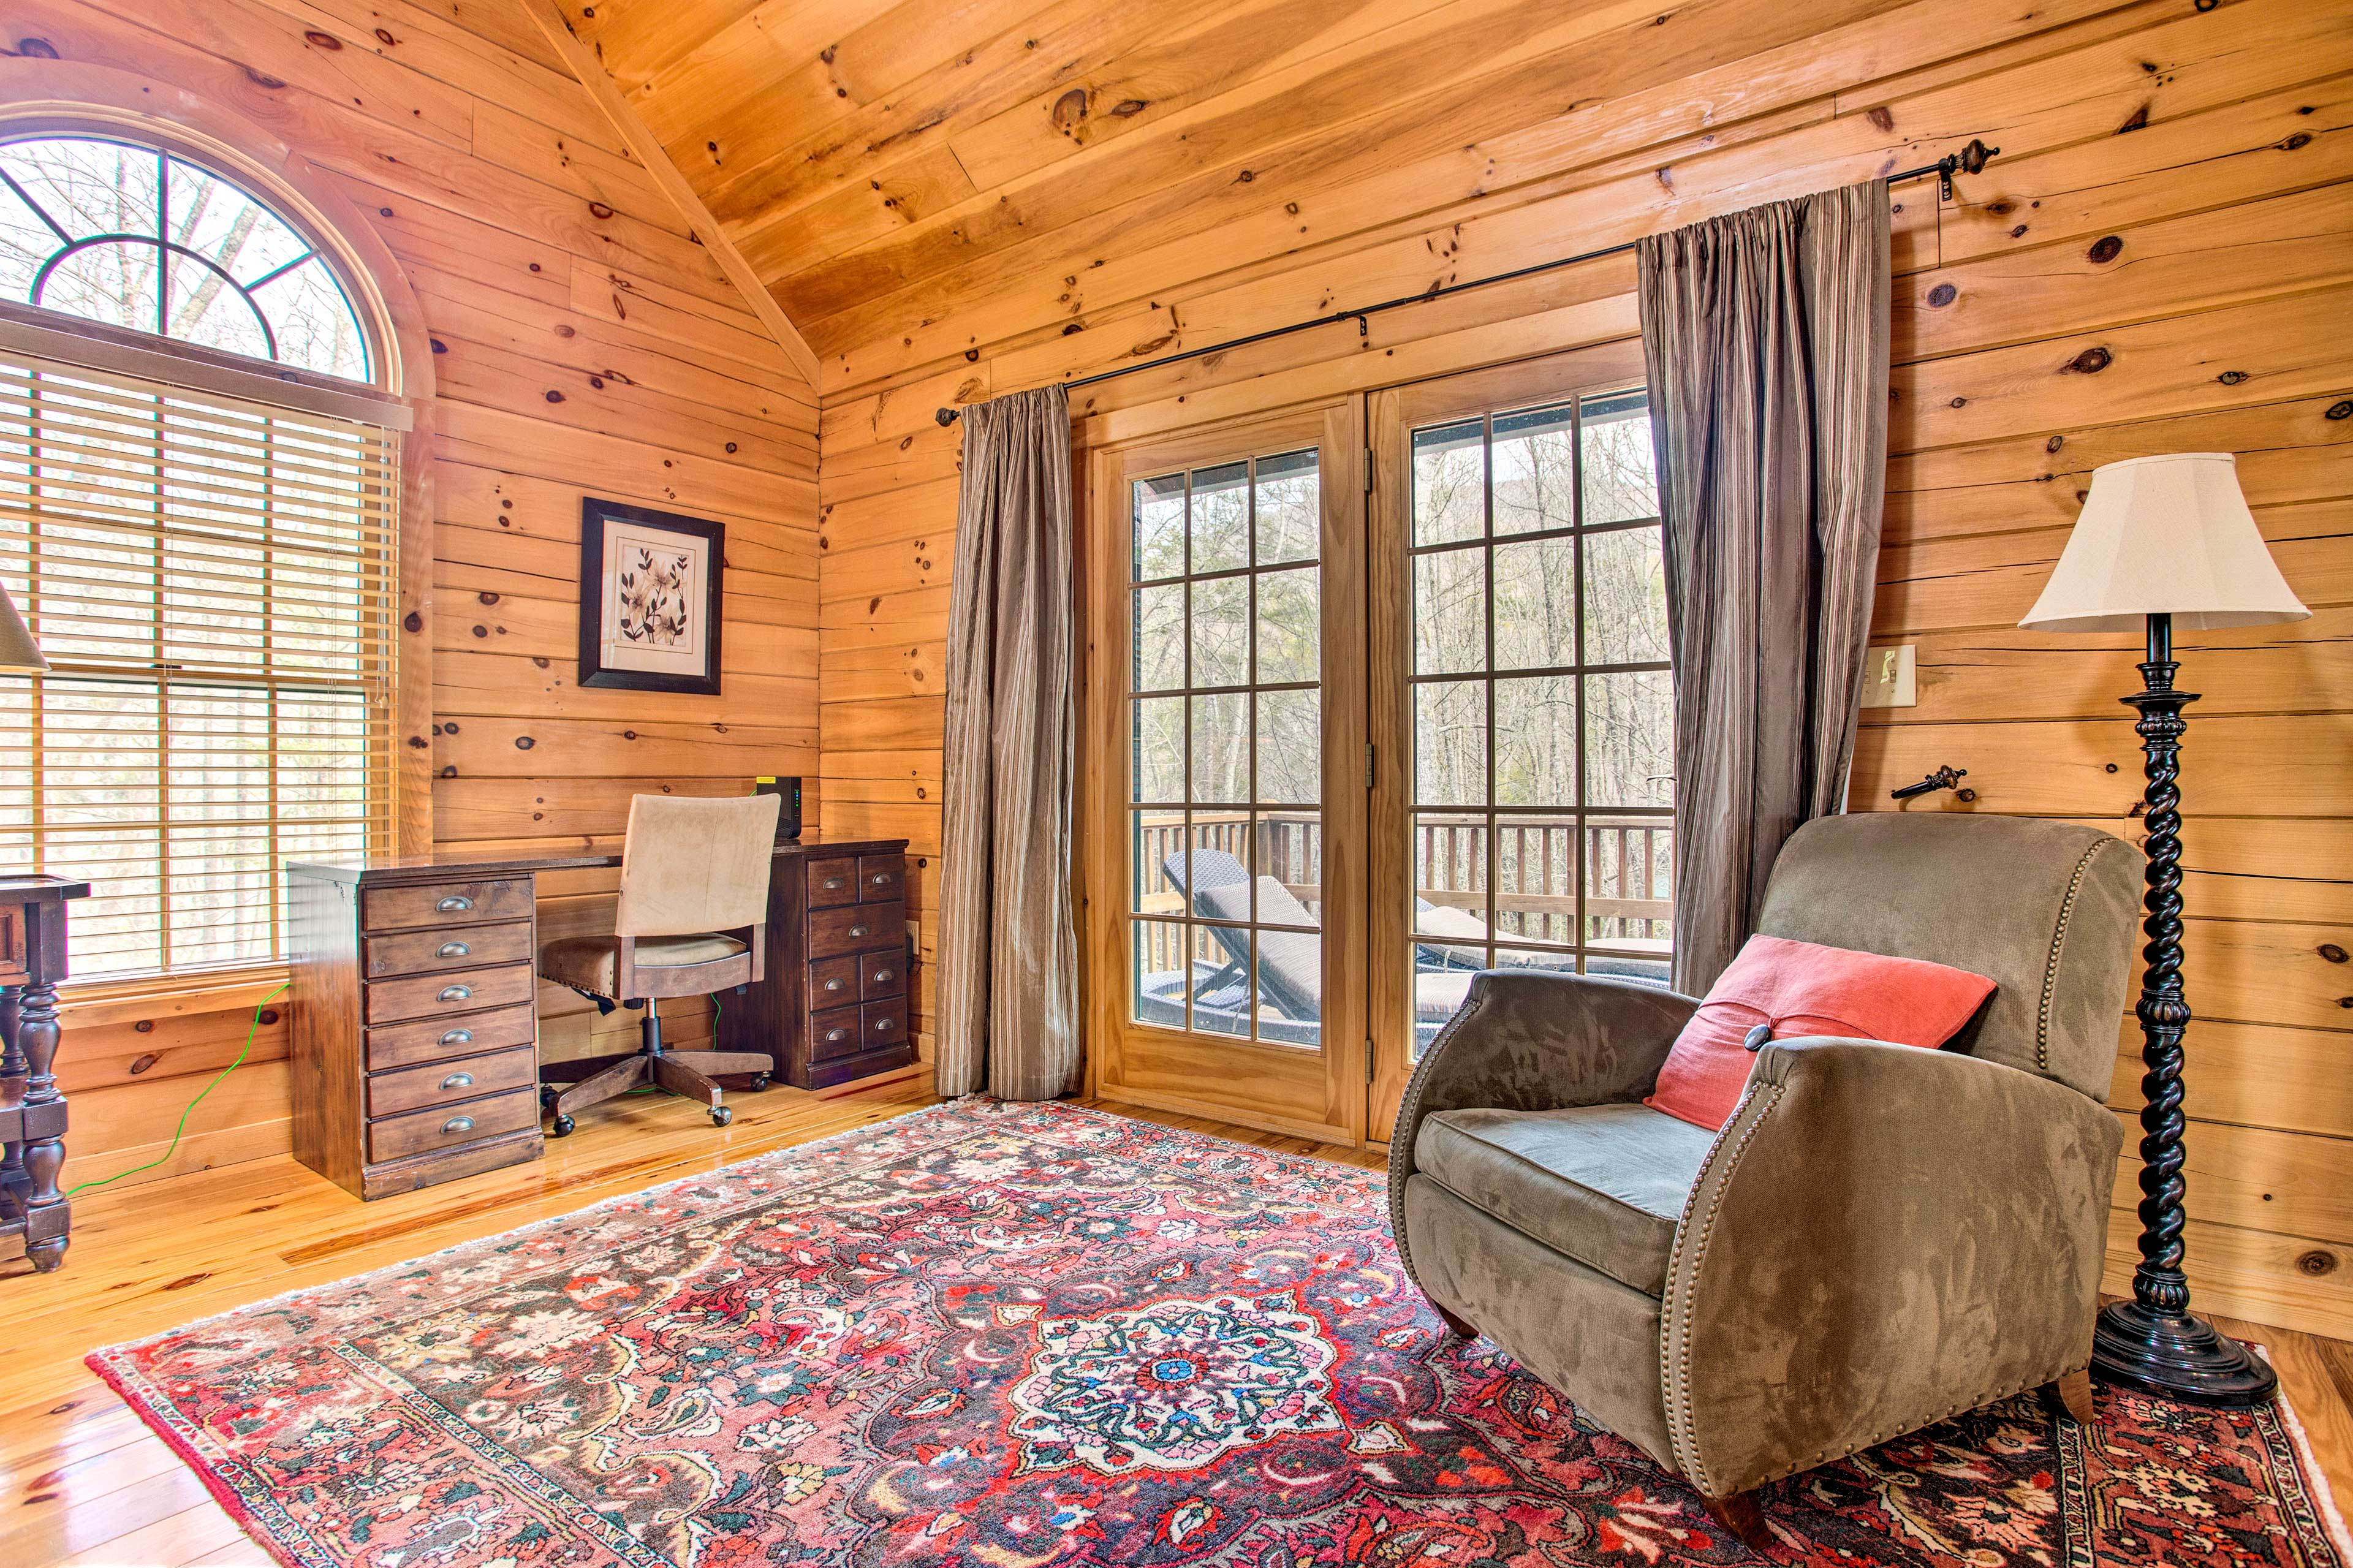 Catch up on some remote work with the cabin's free WiFi.